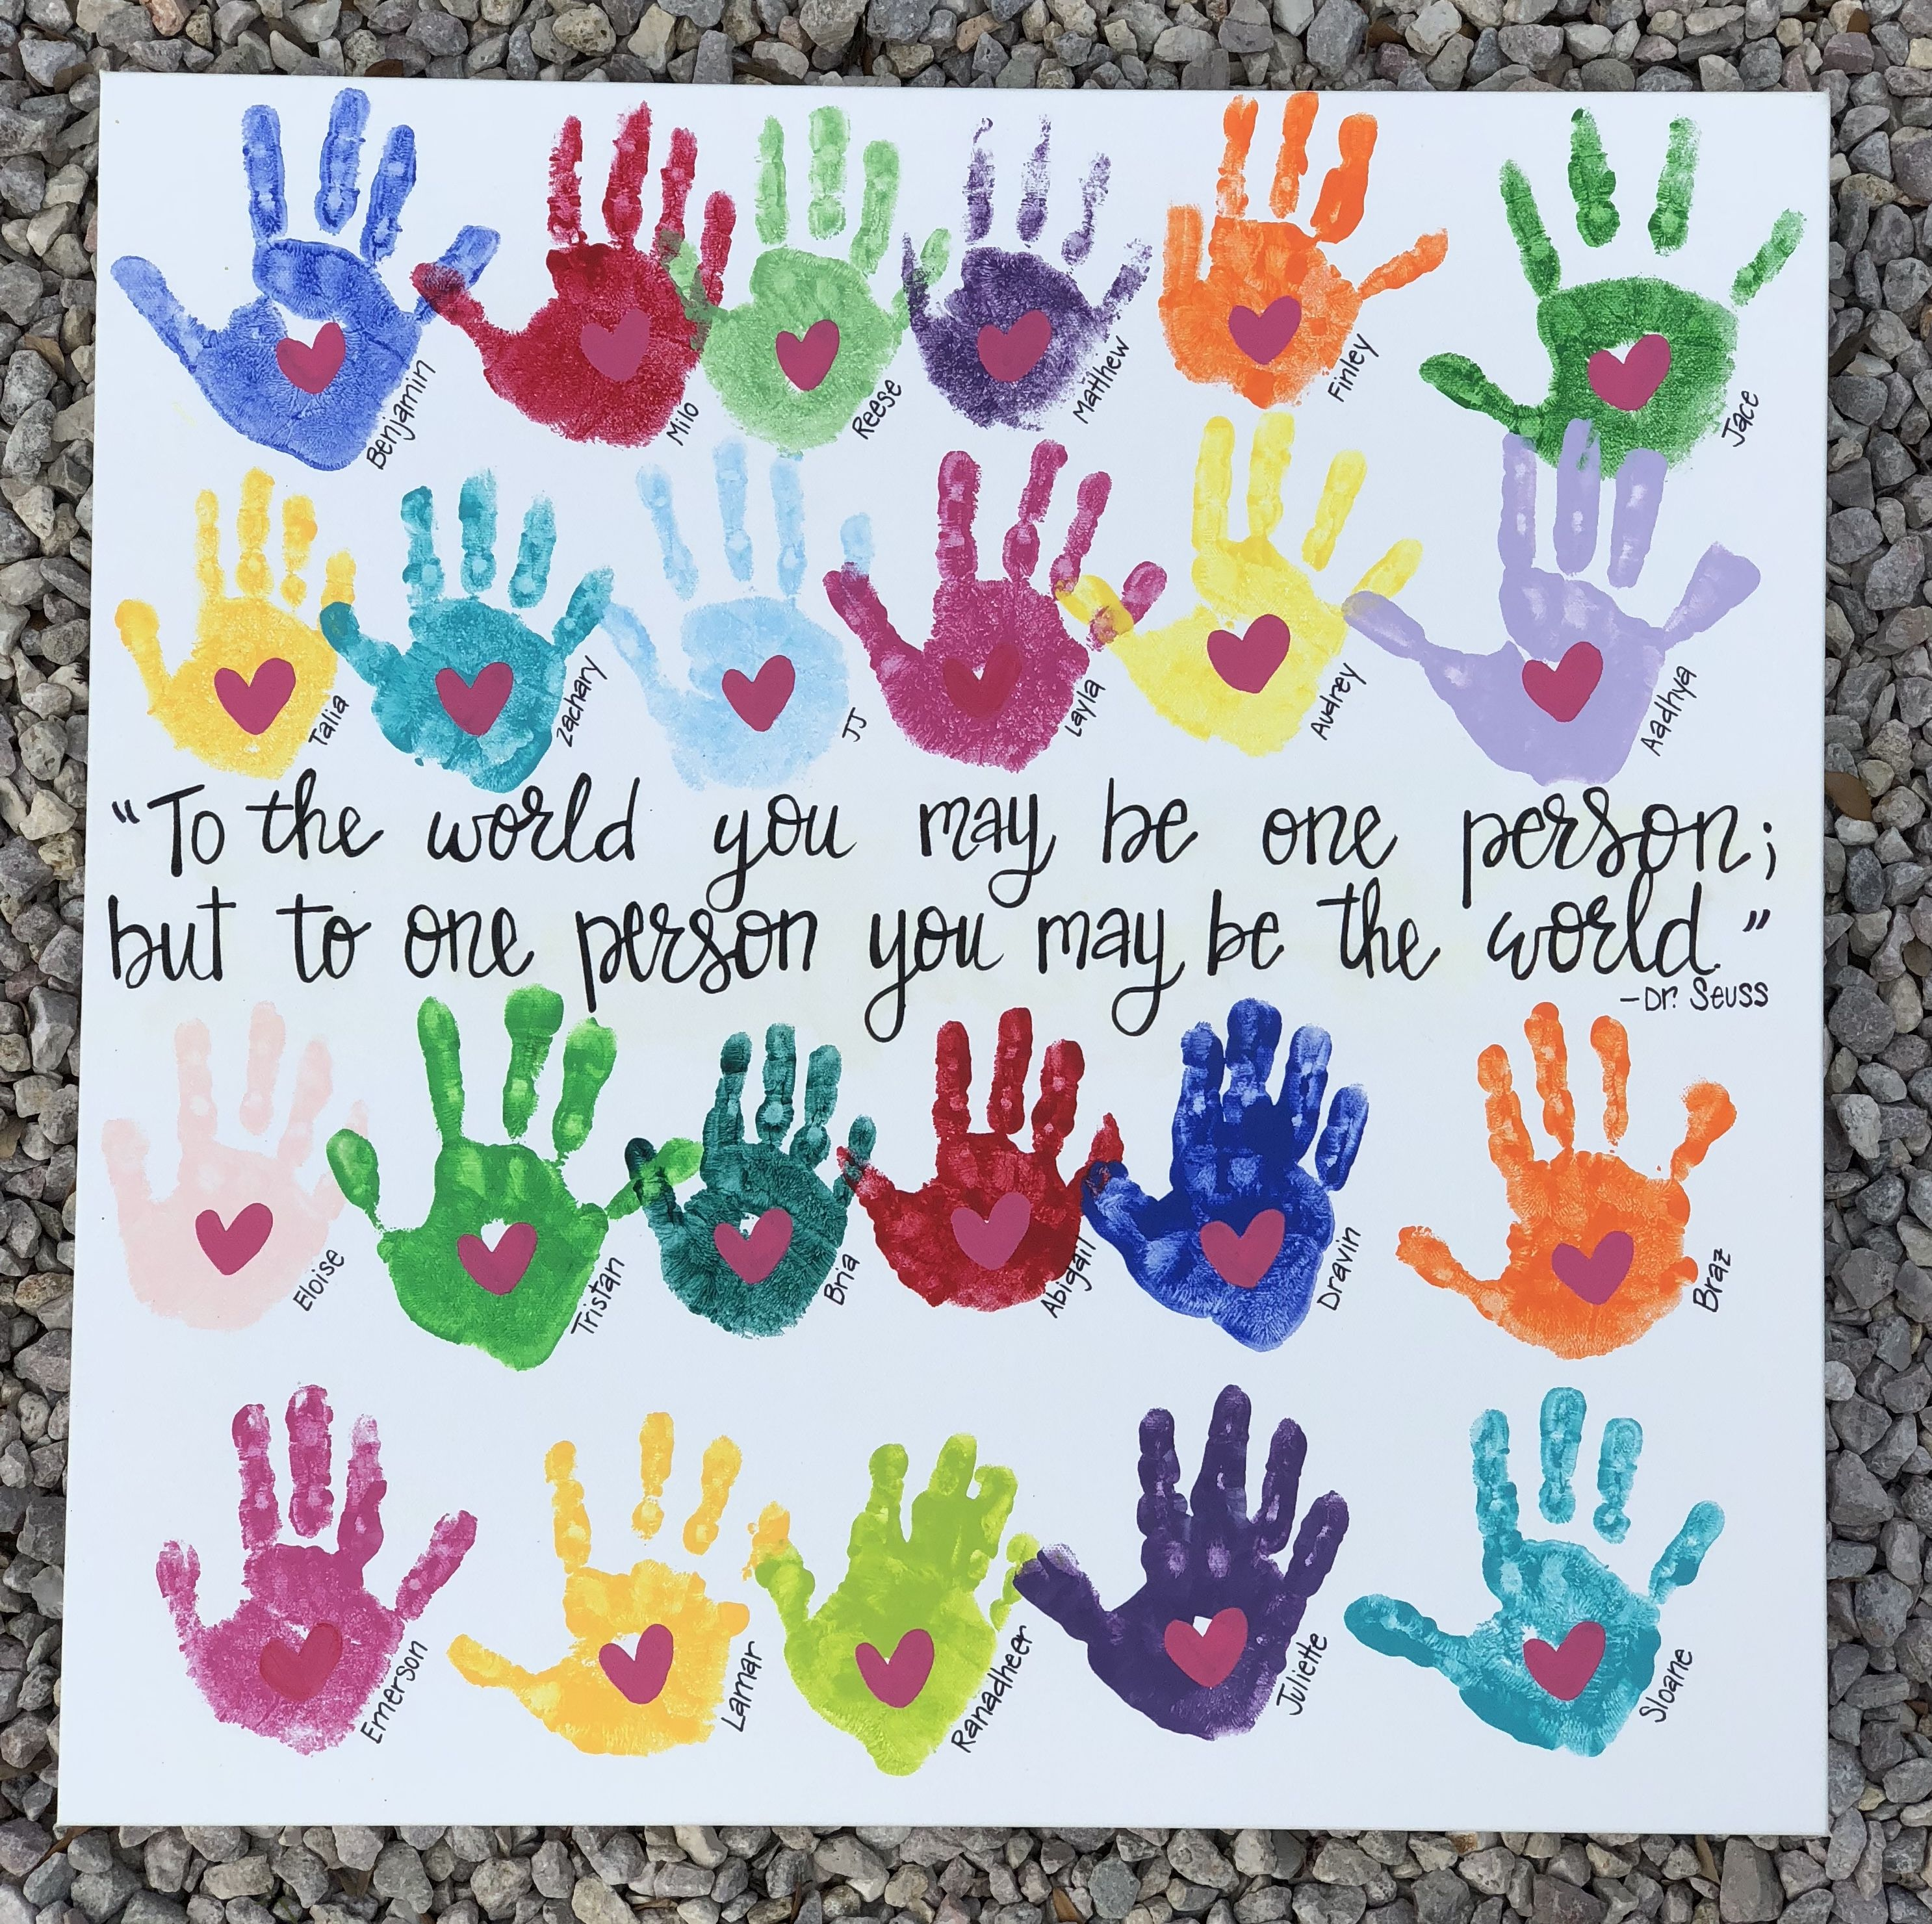 Dr. Seuss handprint canvas. Using students hands in multiple colors to create a …